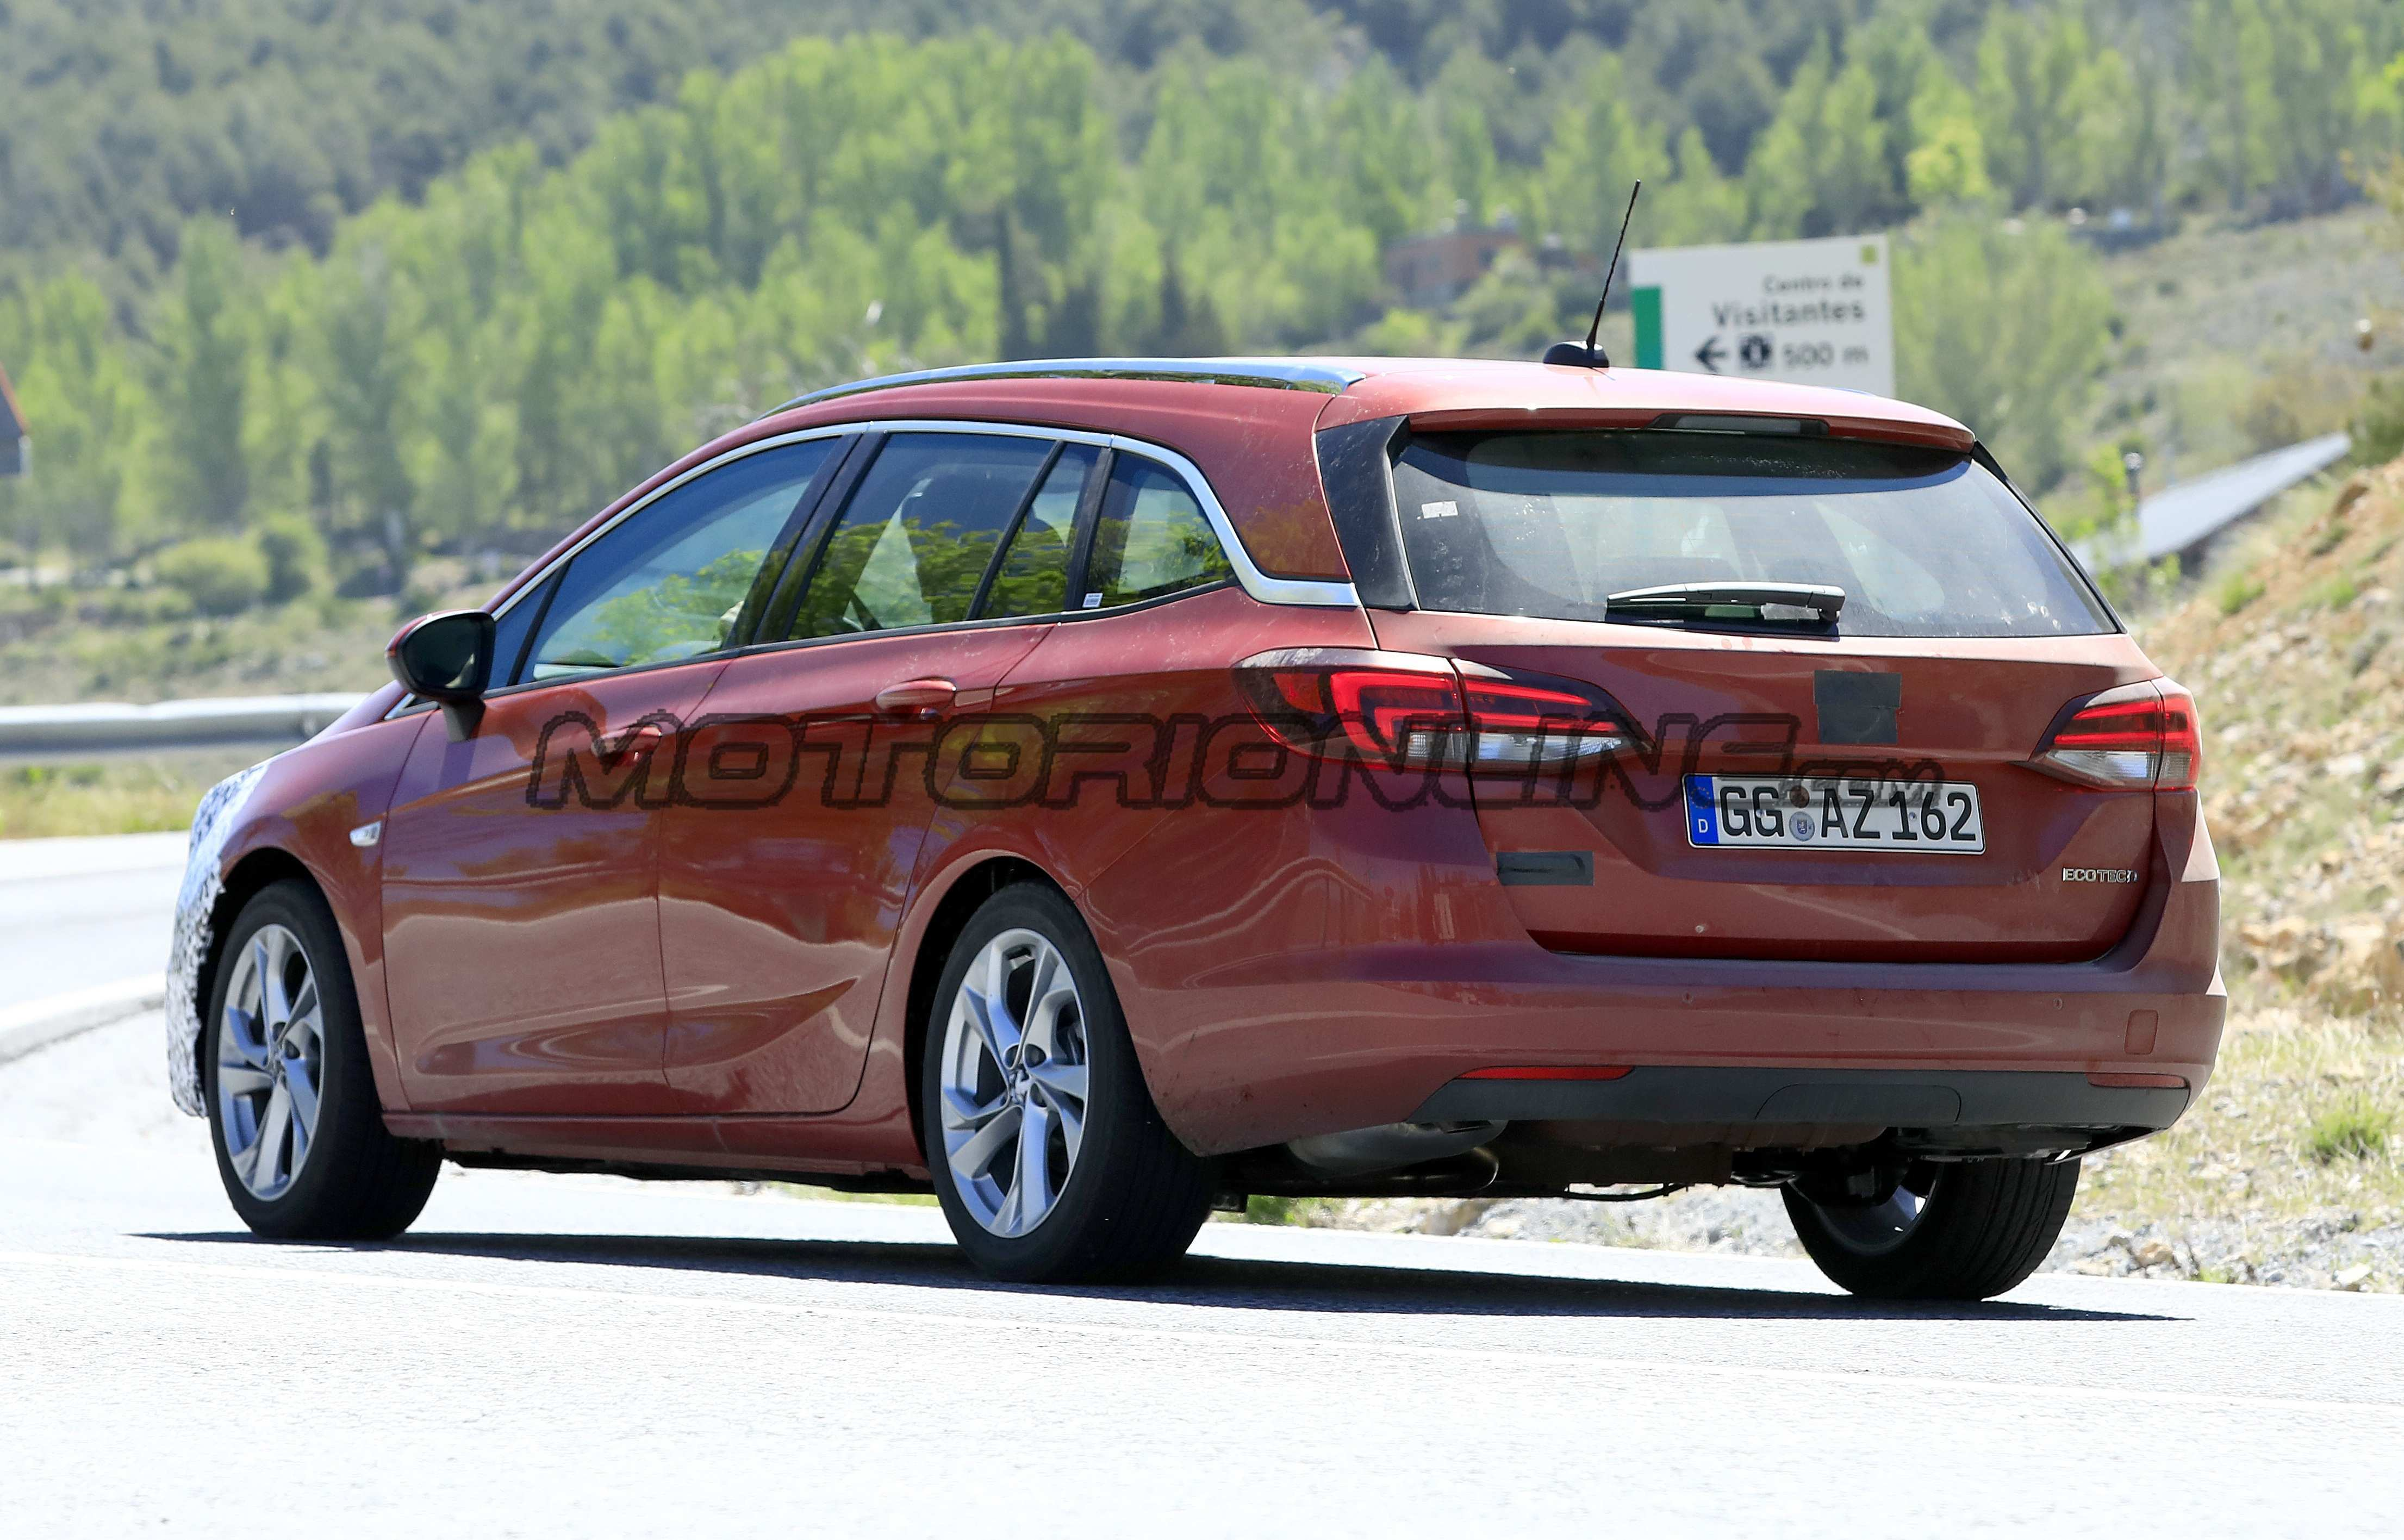 82 Gallery of Opel Astra Sportstourer 2020 Review for Opel Astra Sportstourer 2020